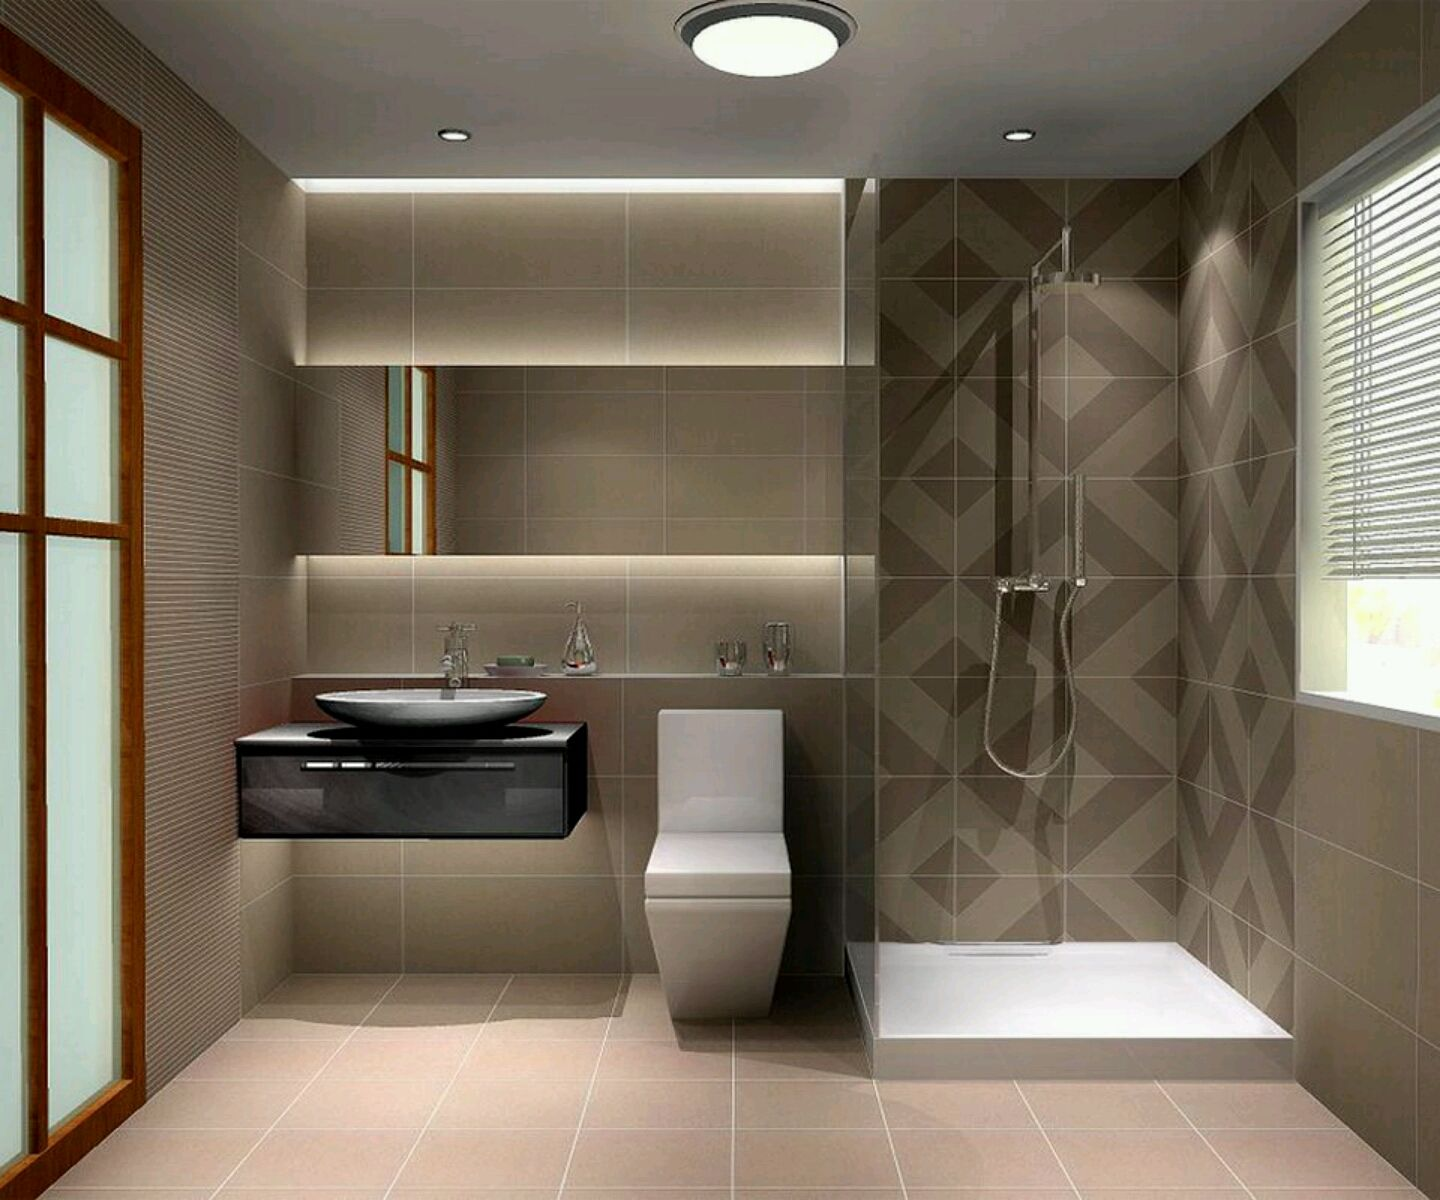 Contemporary Bathroom Design 3. Contemporary Bathroom Designs Ideas   Bathroom designs  Small